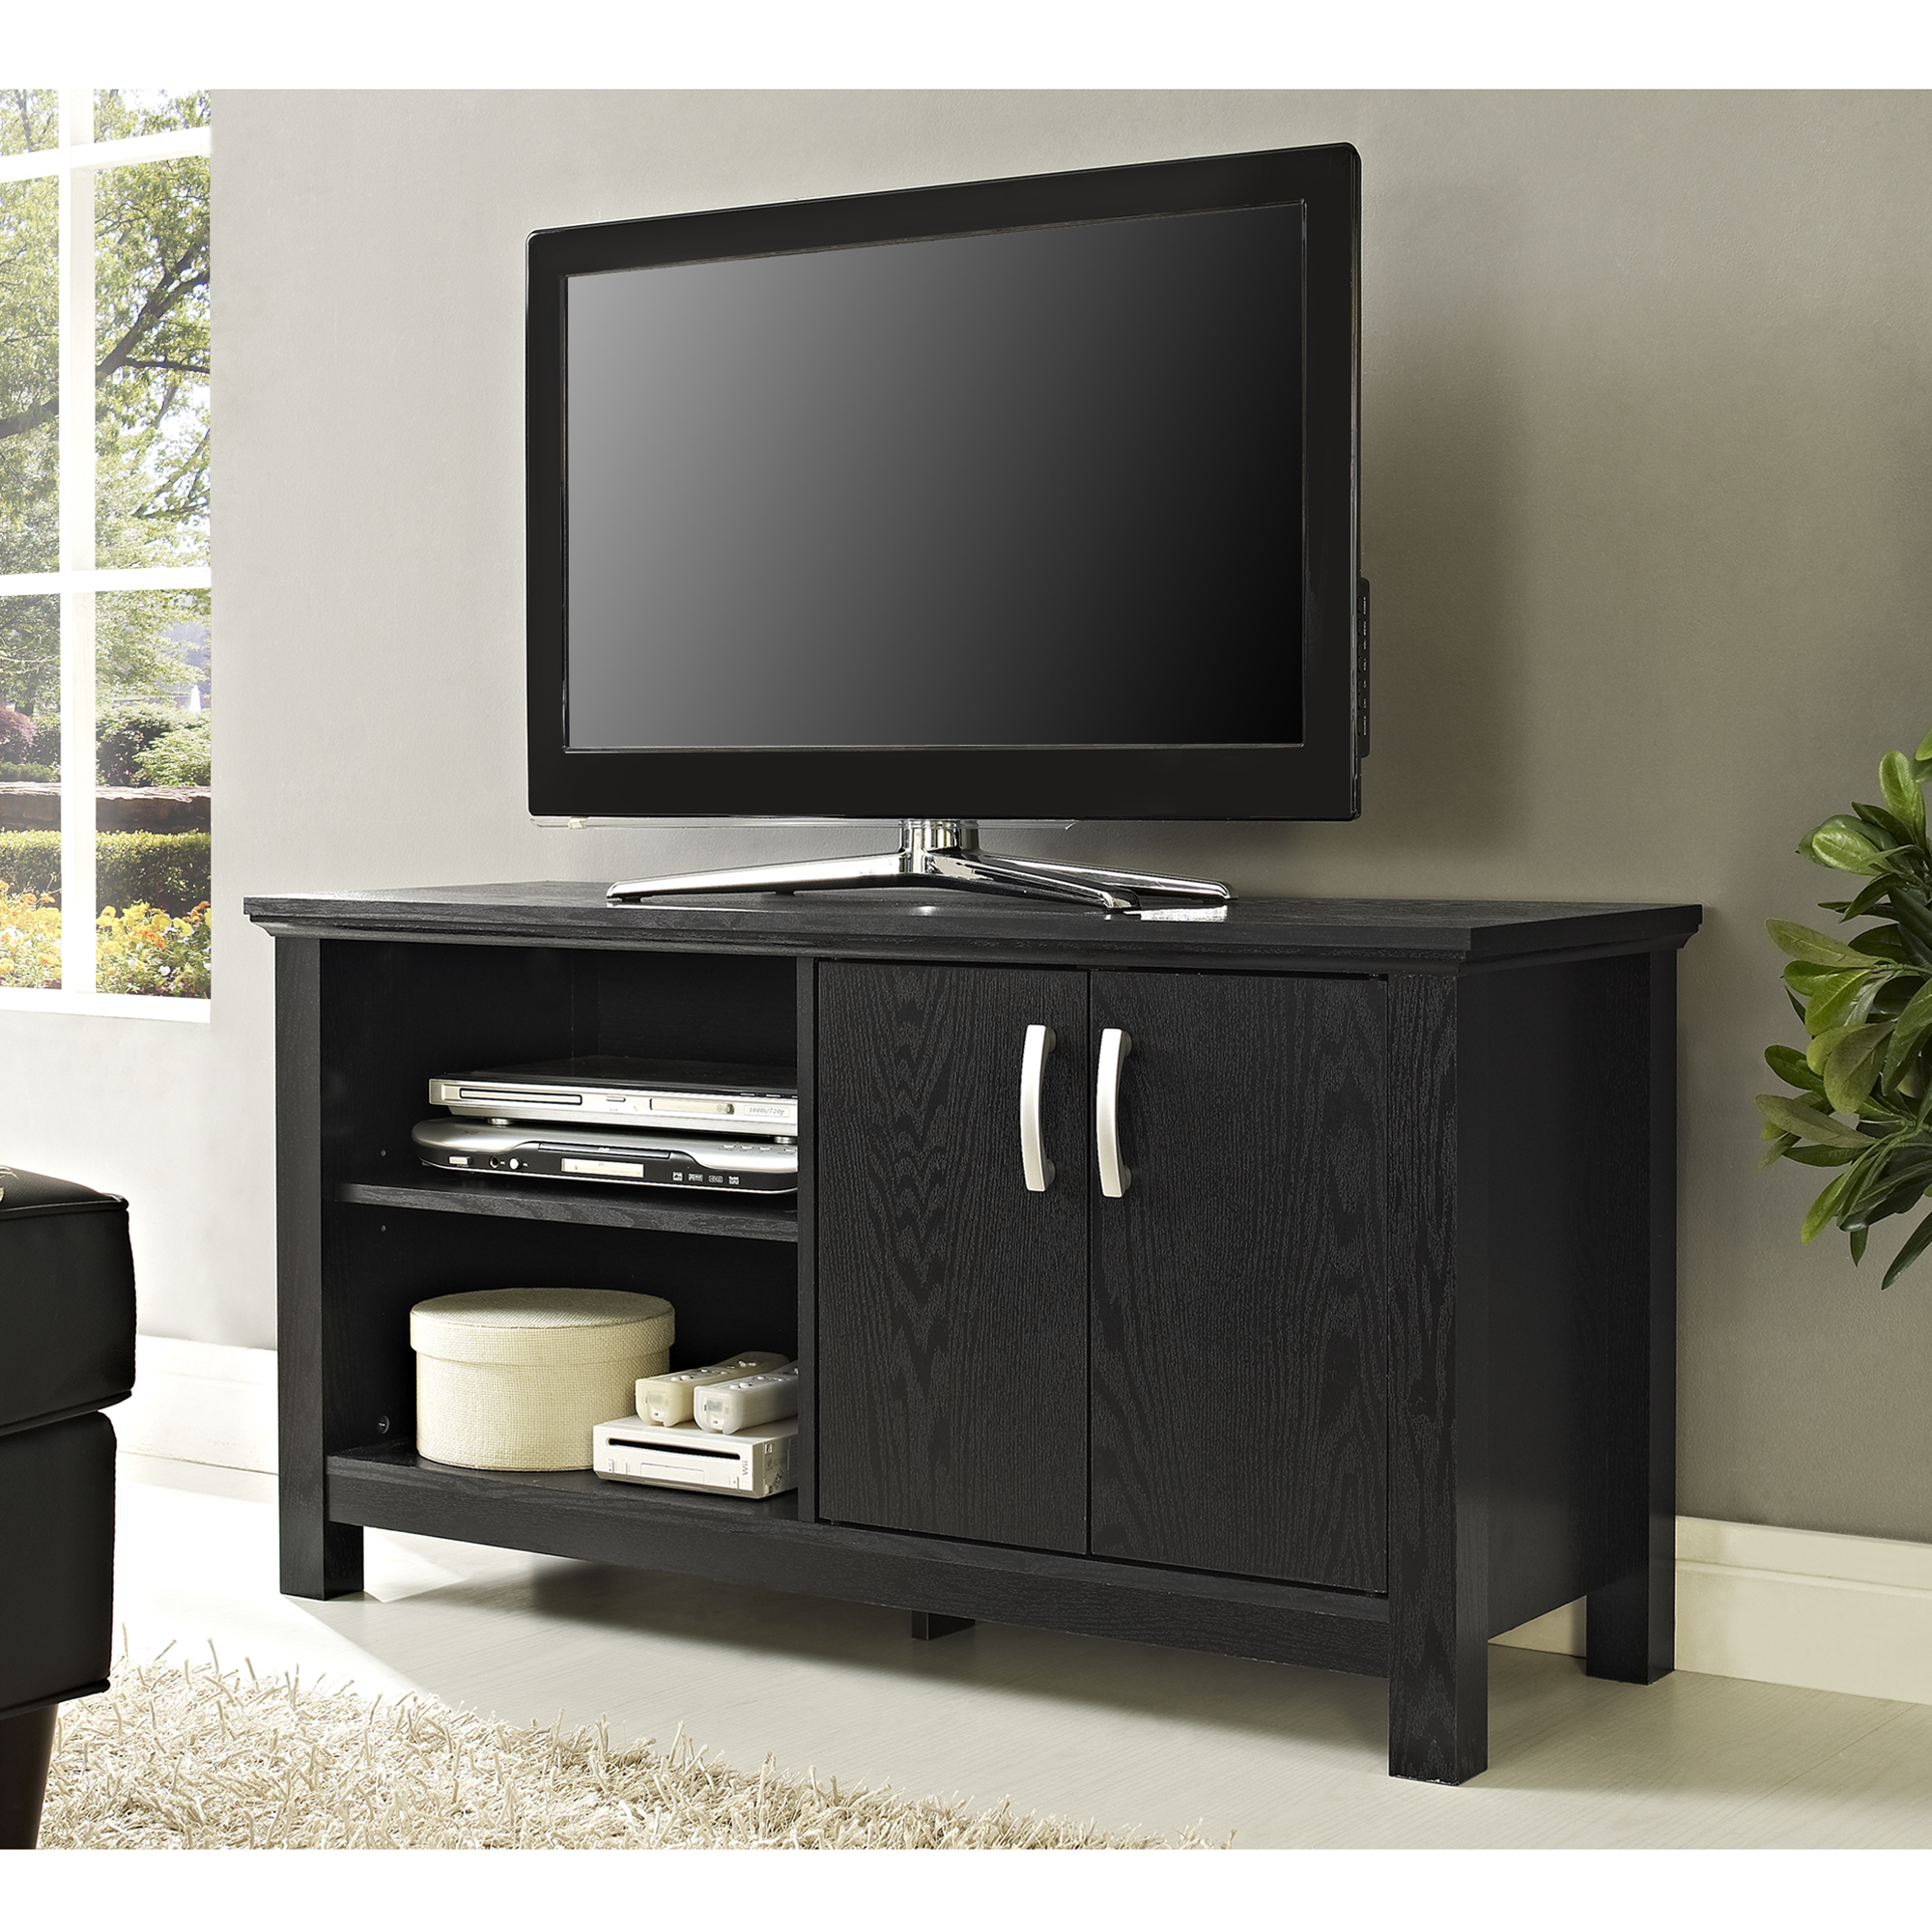 Walker Edison 60 Quot Charcoal Grey Wood Tv Stand Home